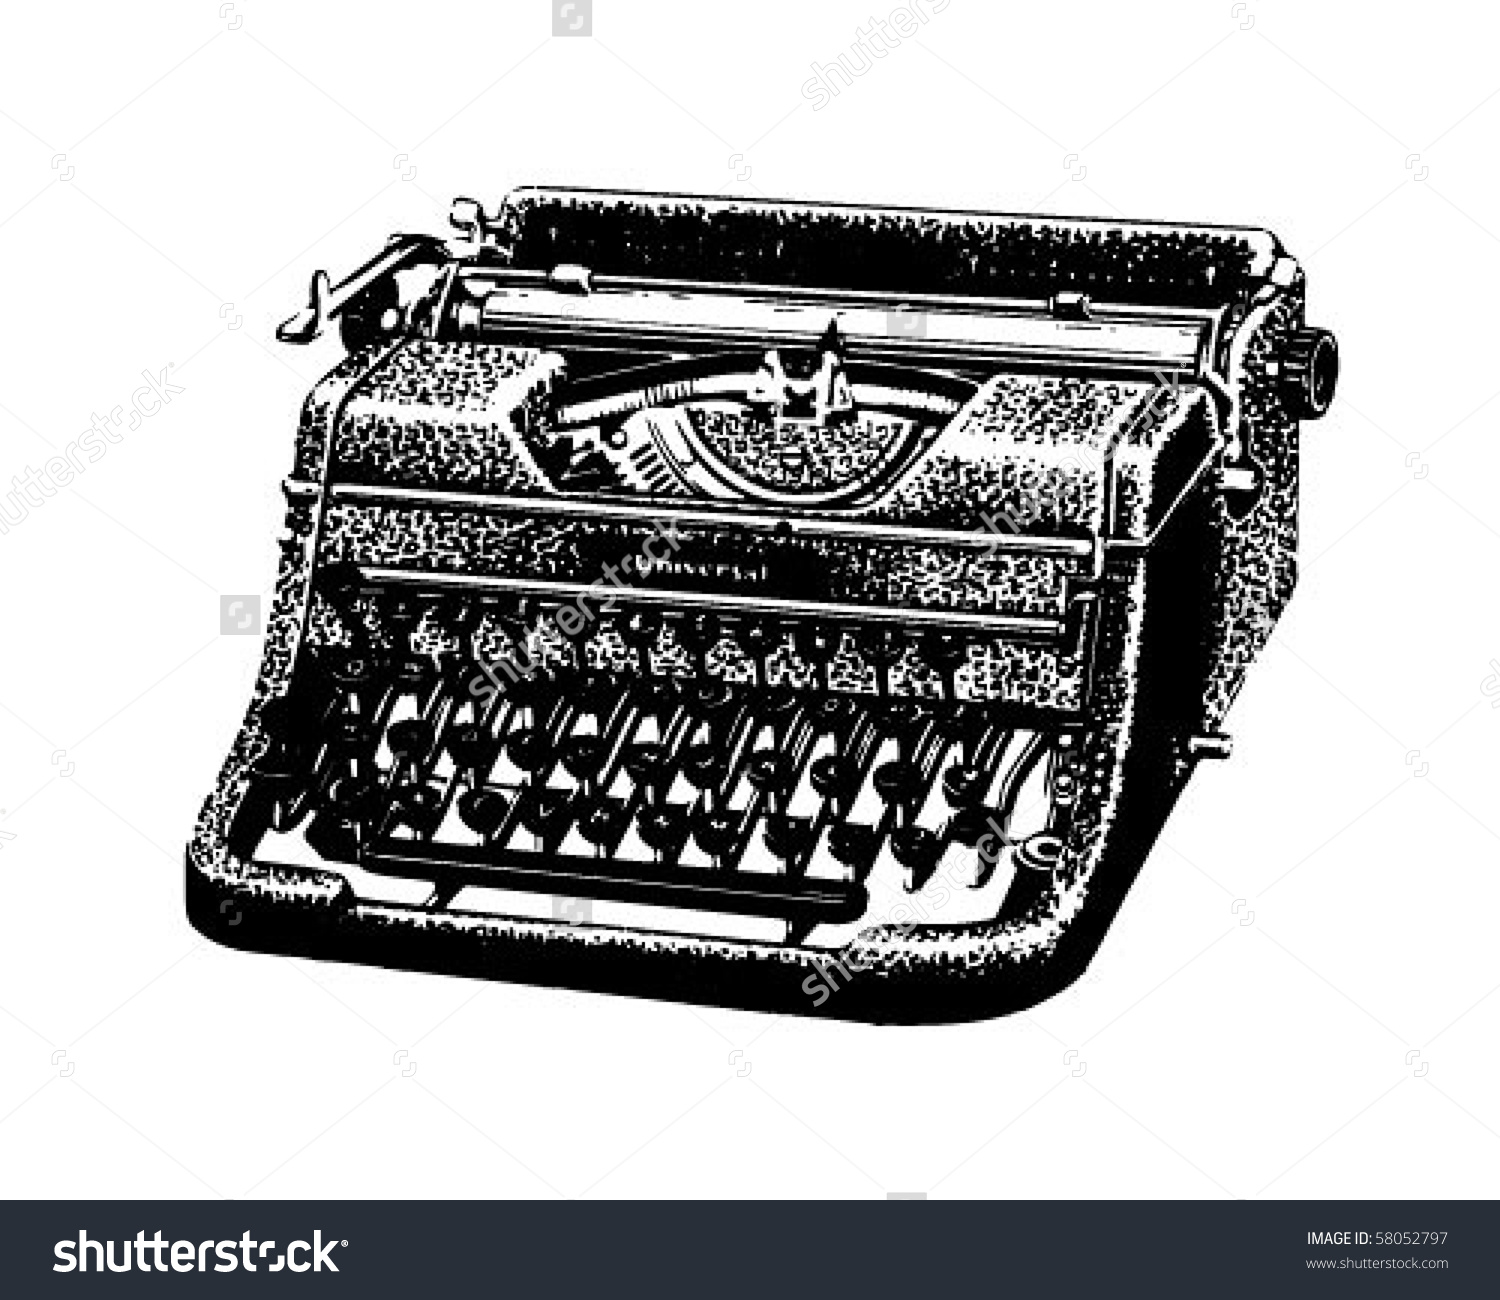 Vintage Typewriter - Retro Clip Art